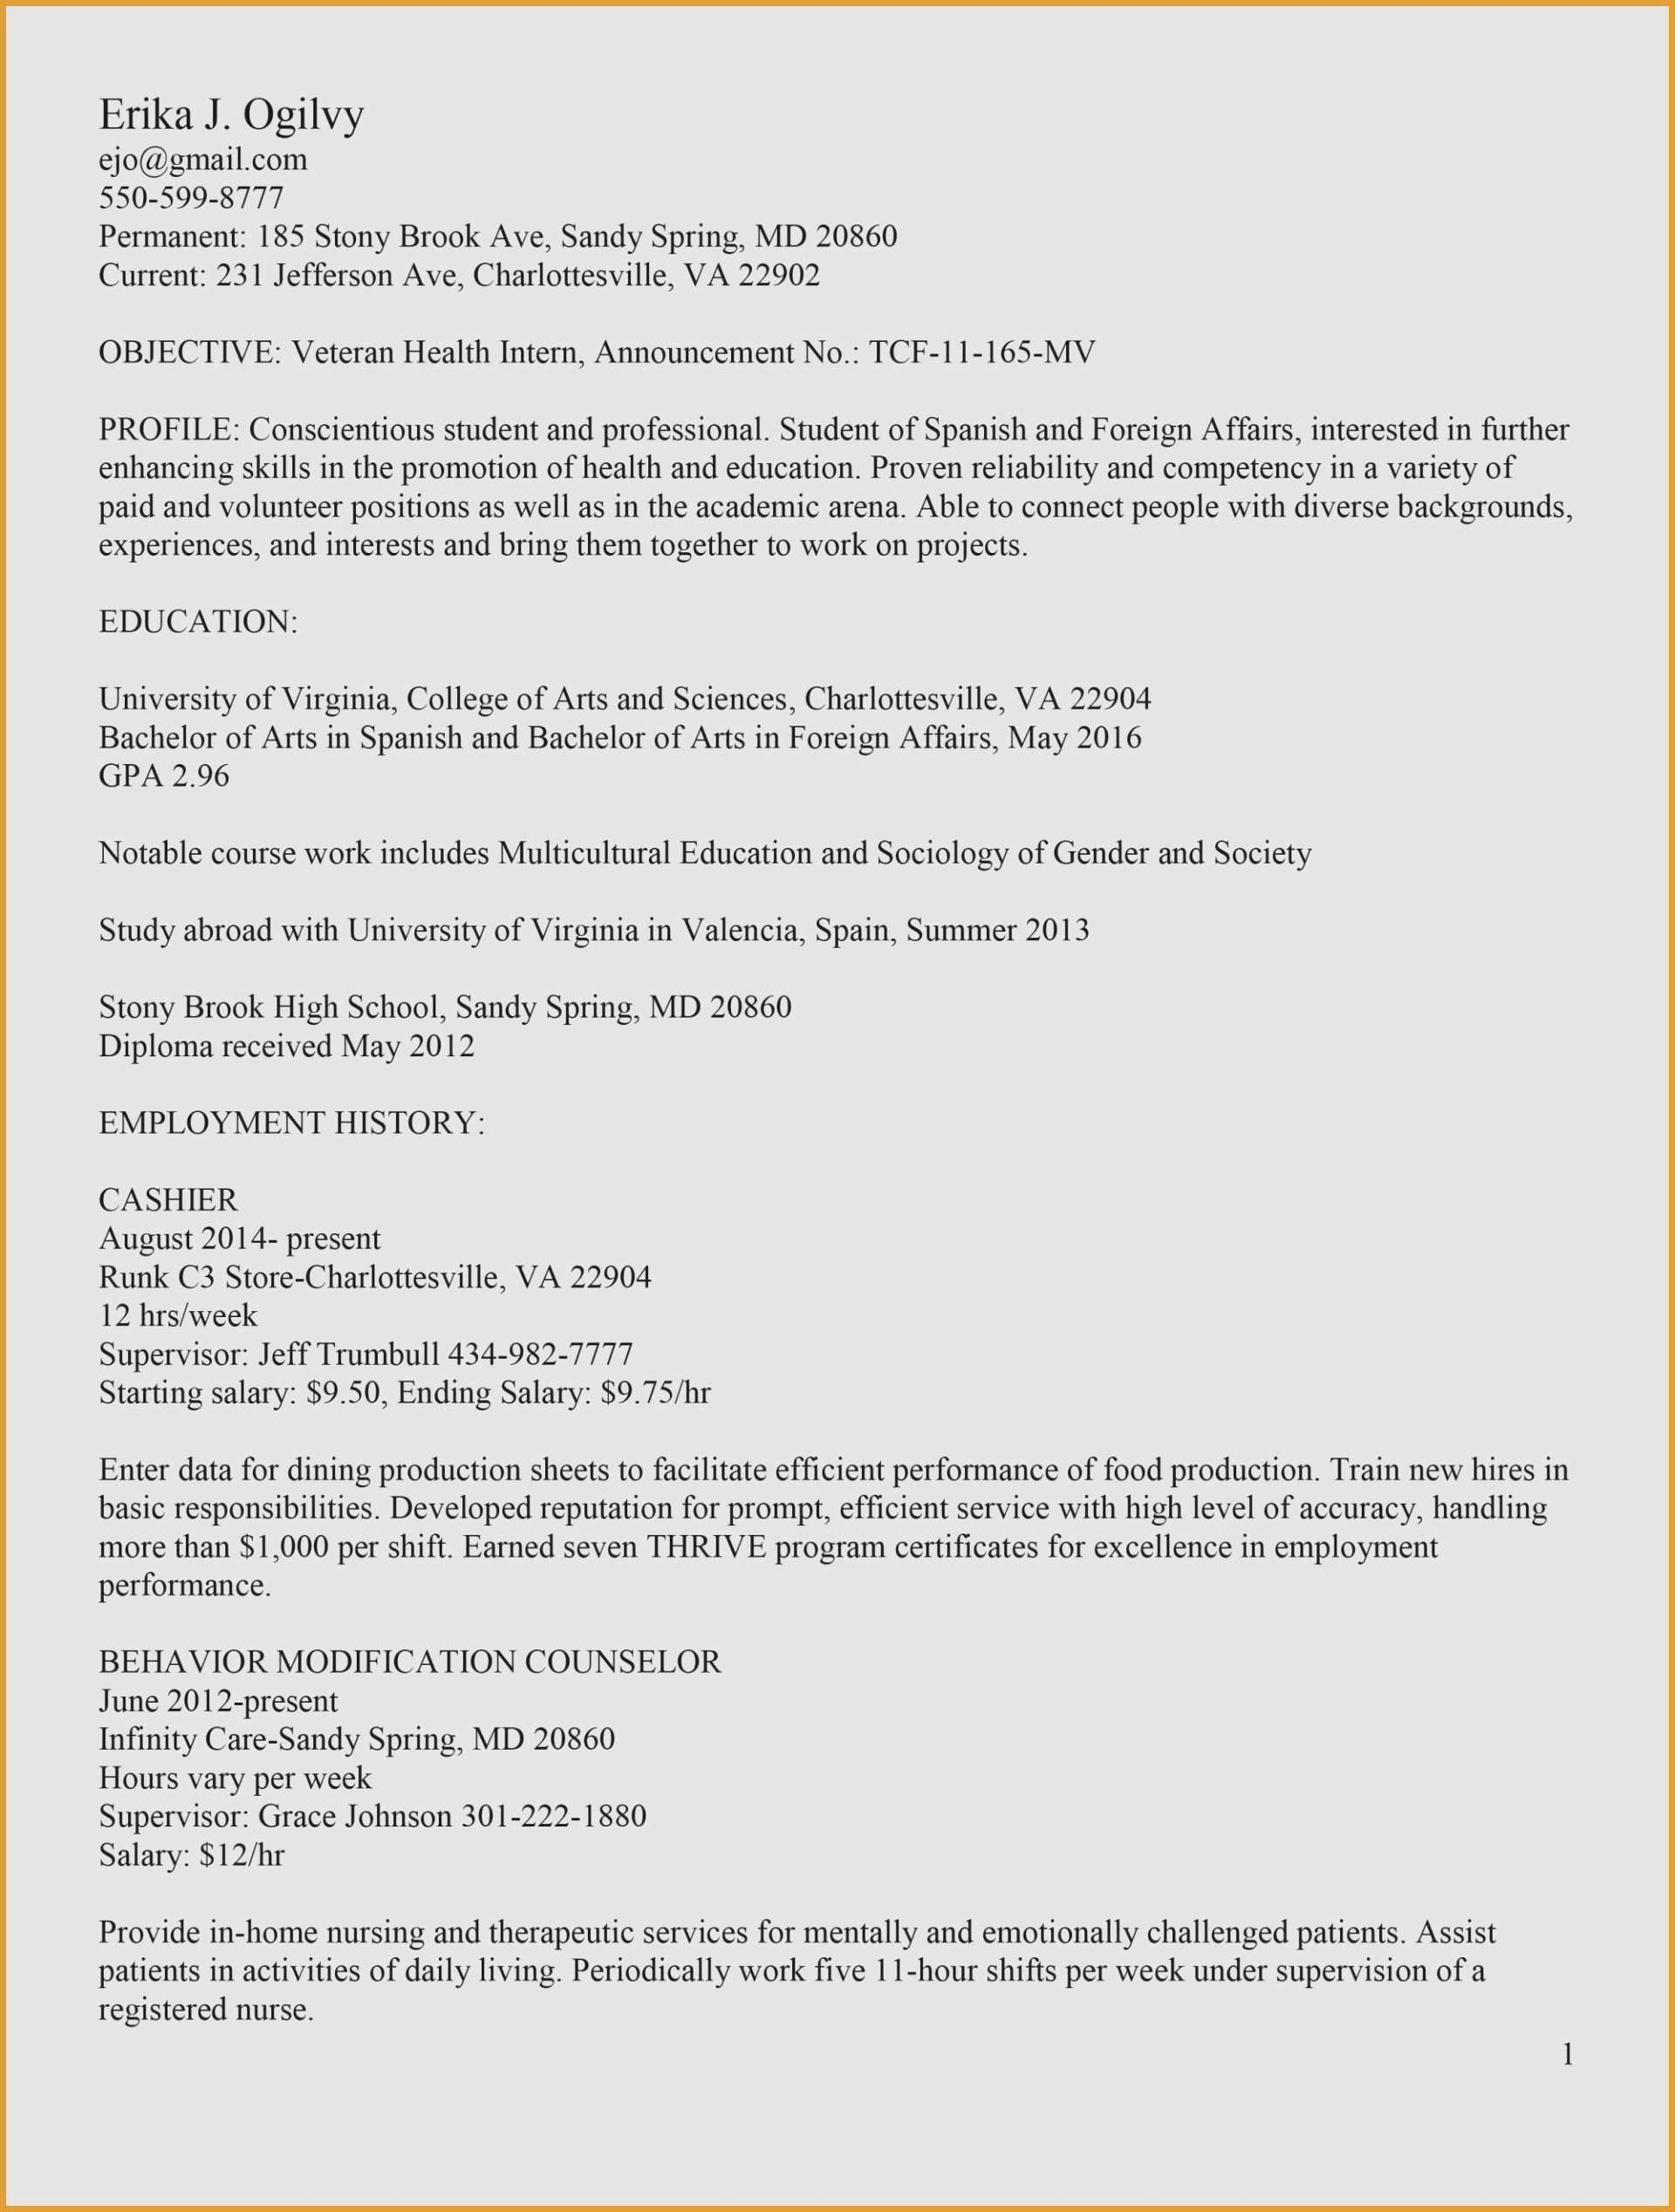 25+ Cover Letter Generator Functional resume template